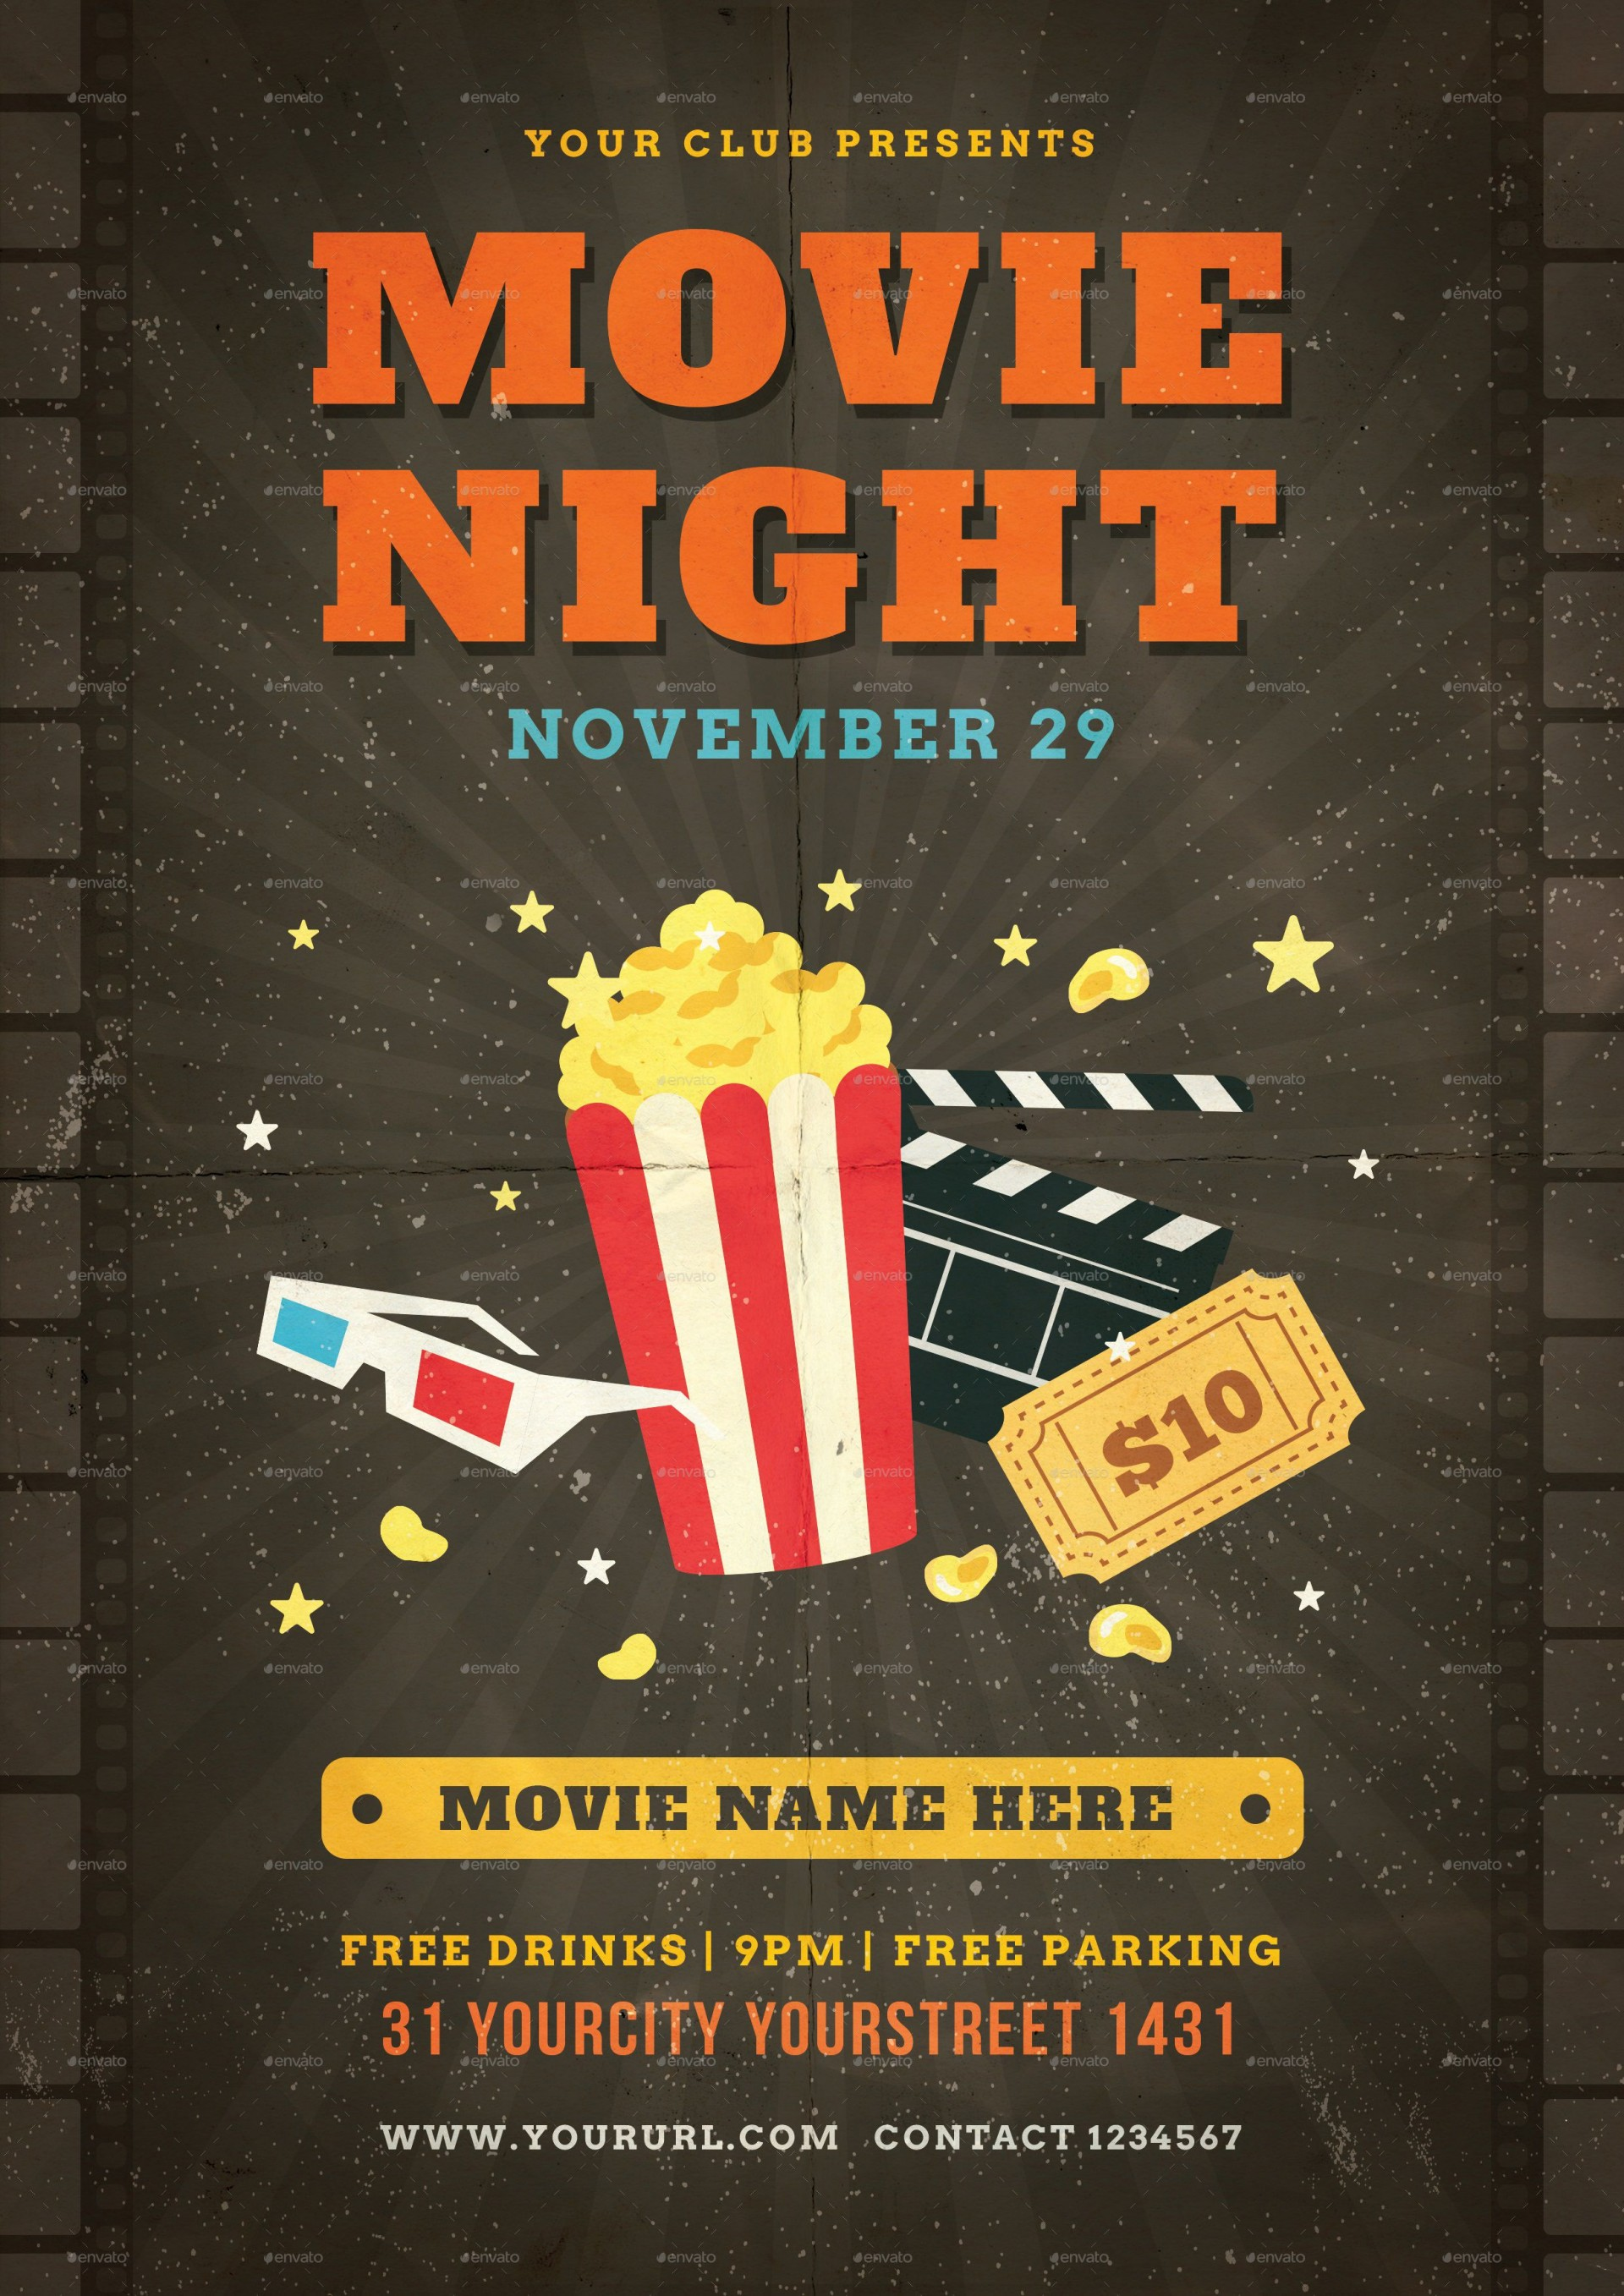 000 Remarkable Movie Night Flyer Template Highest Quality  Editable Psd Free1920